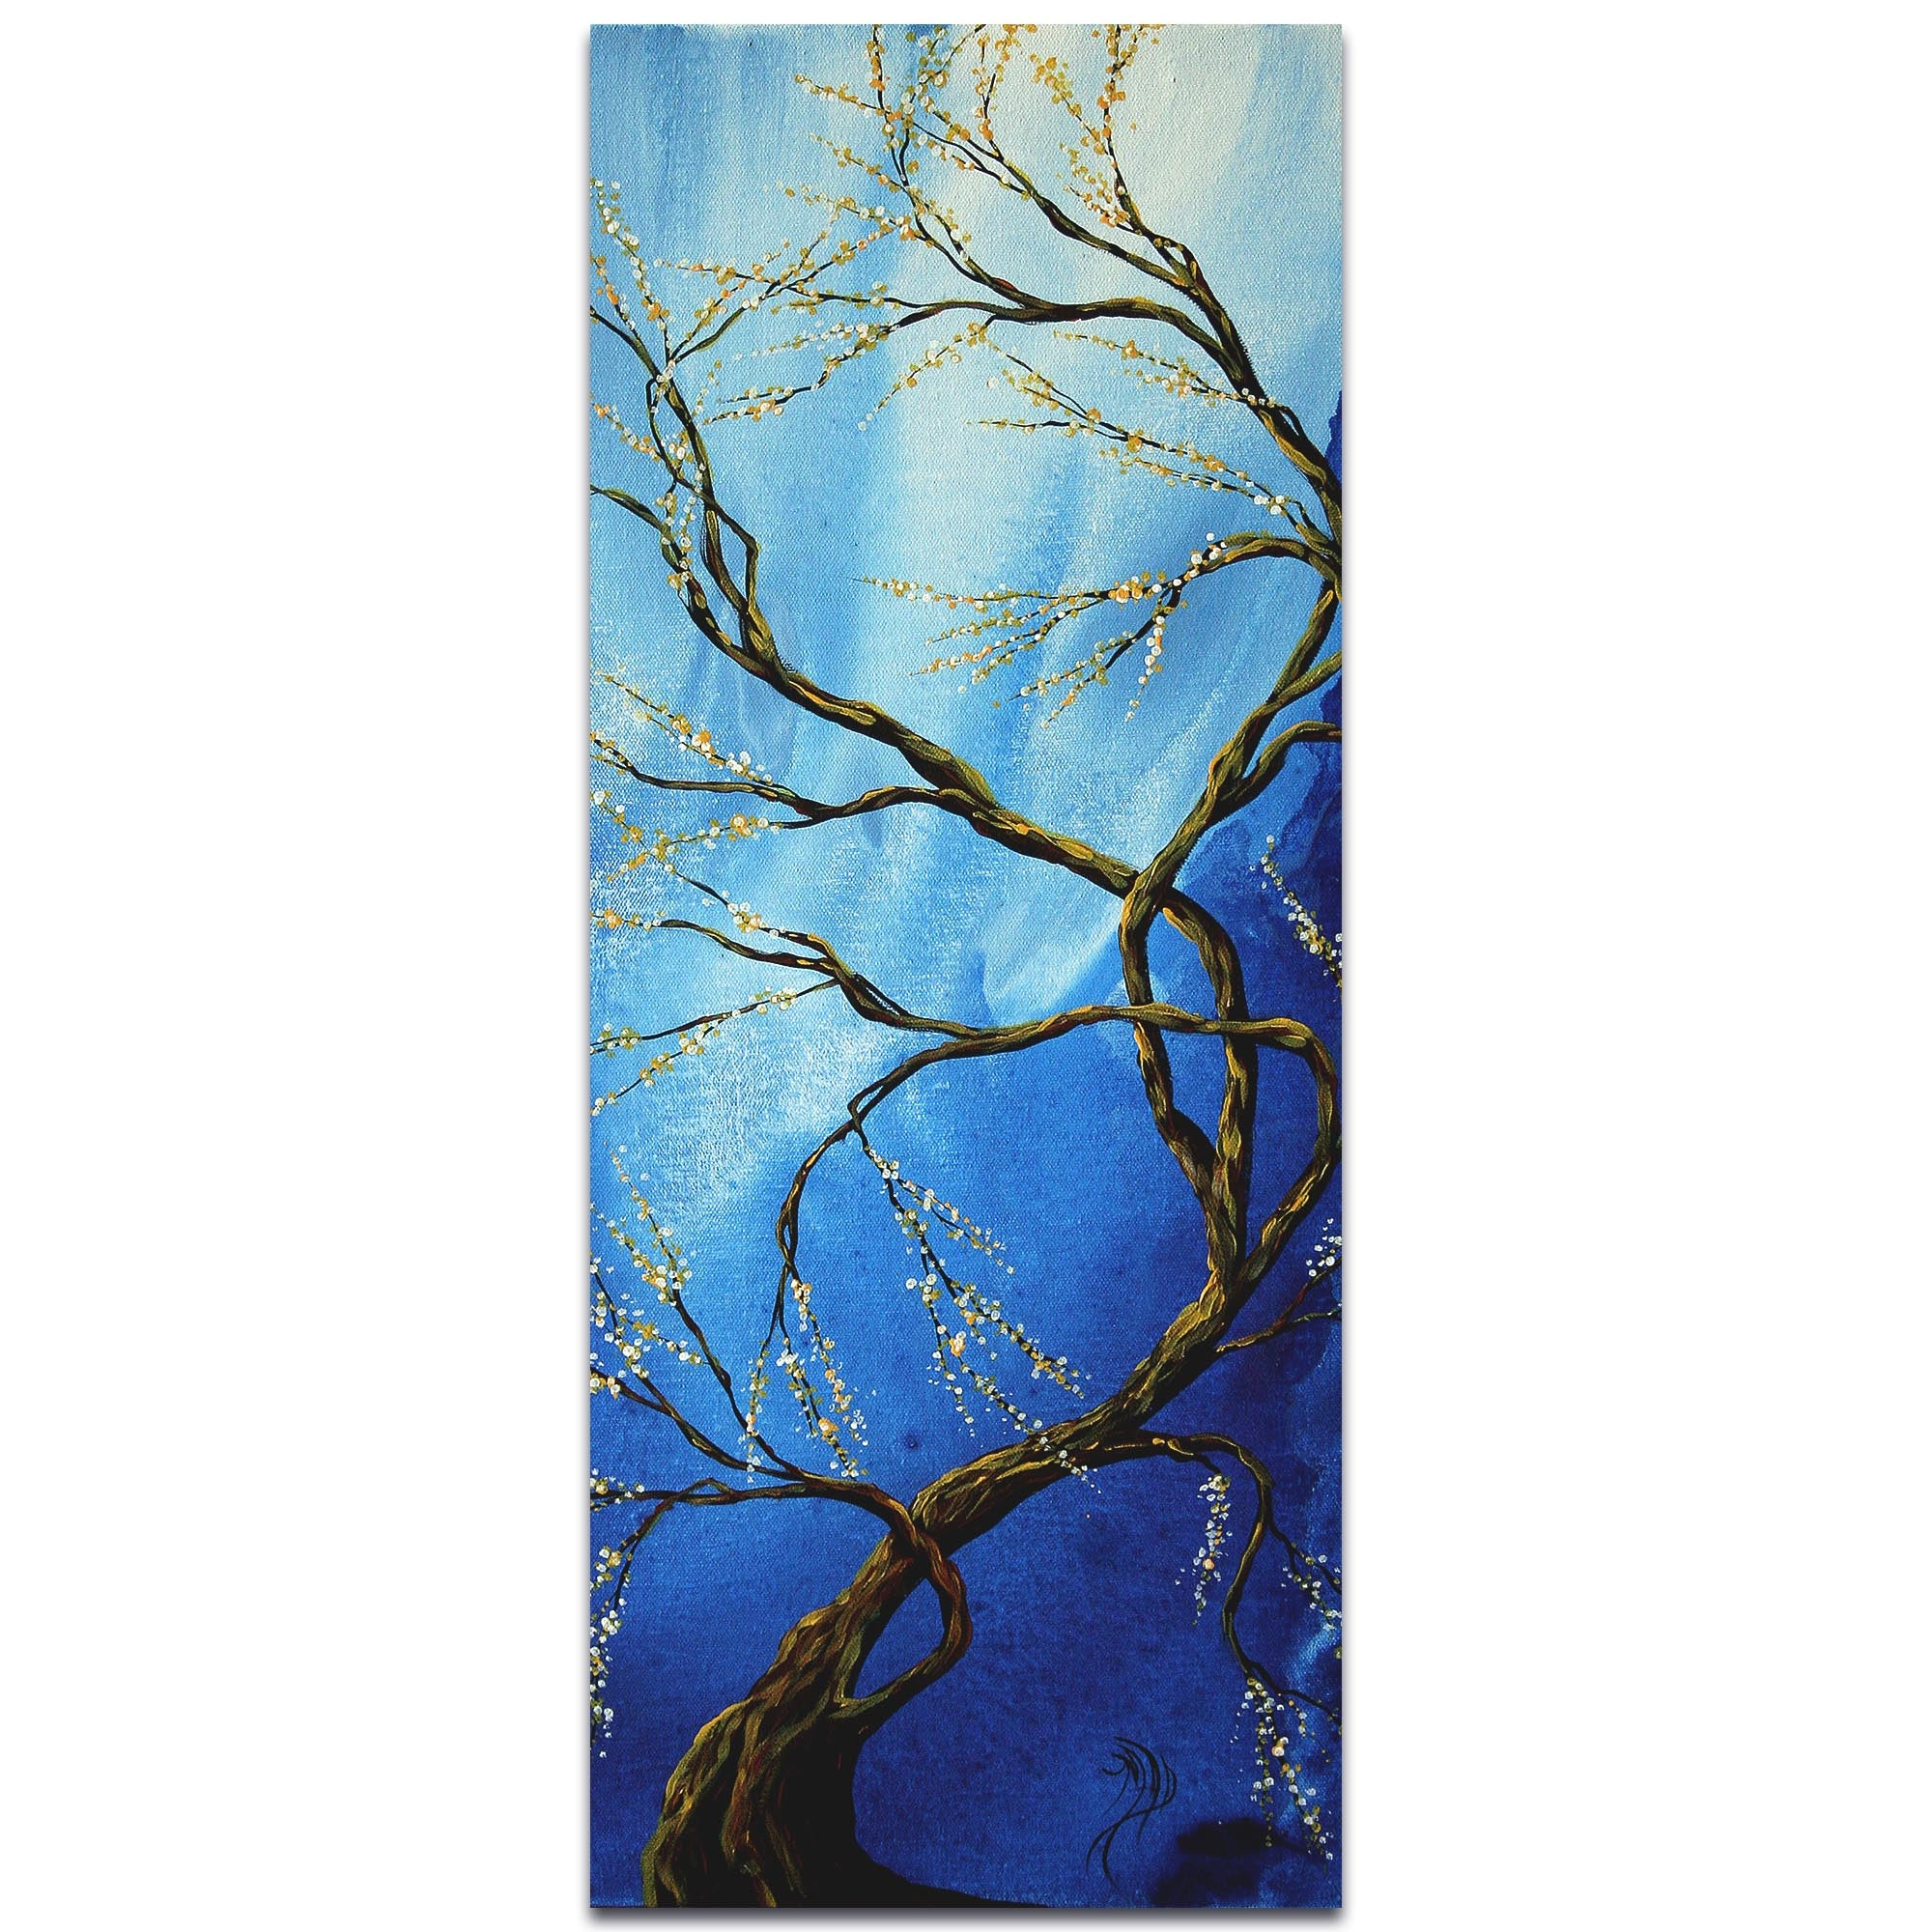 Infinite Heights by Megan Duncanson - Landscape Painting on Metal or Acrylic